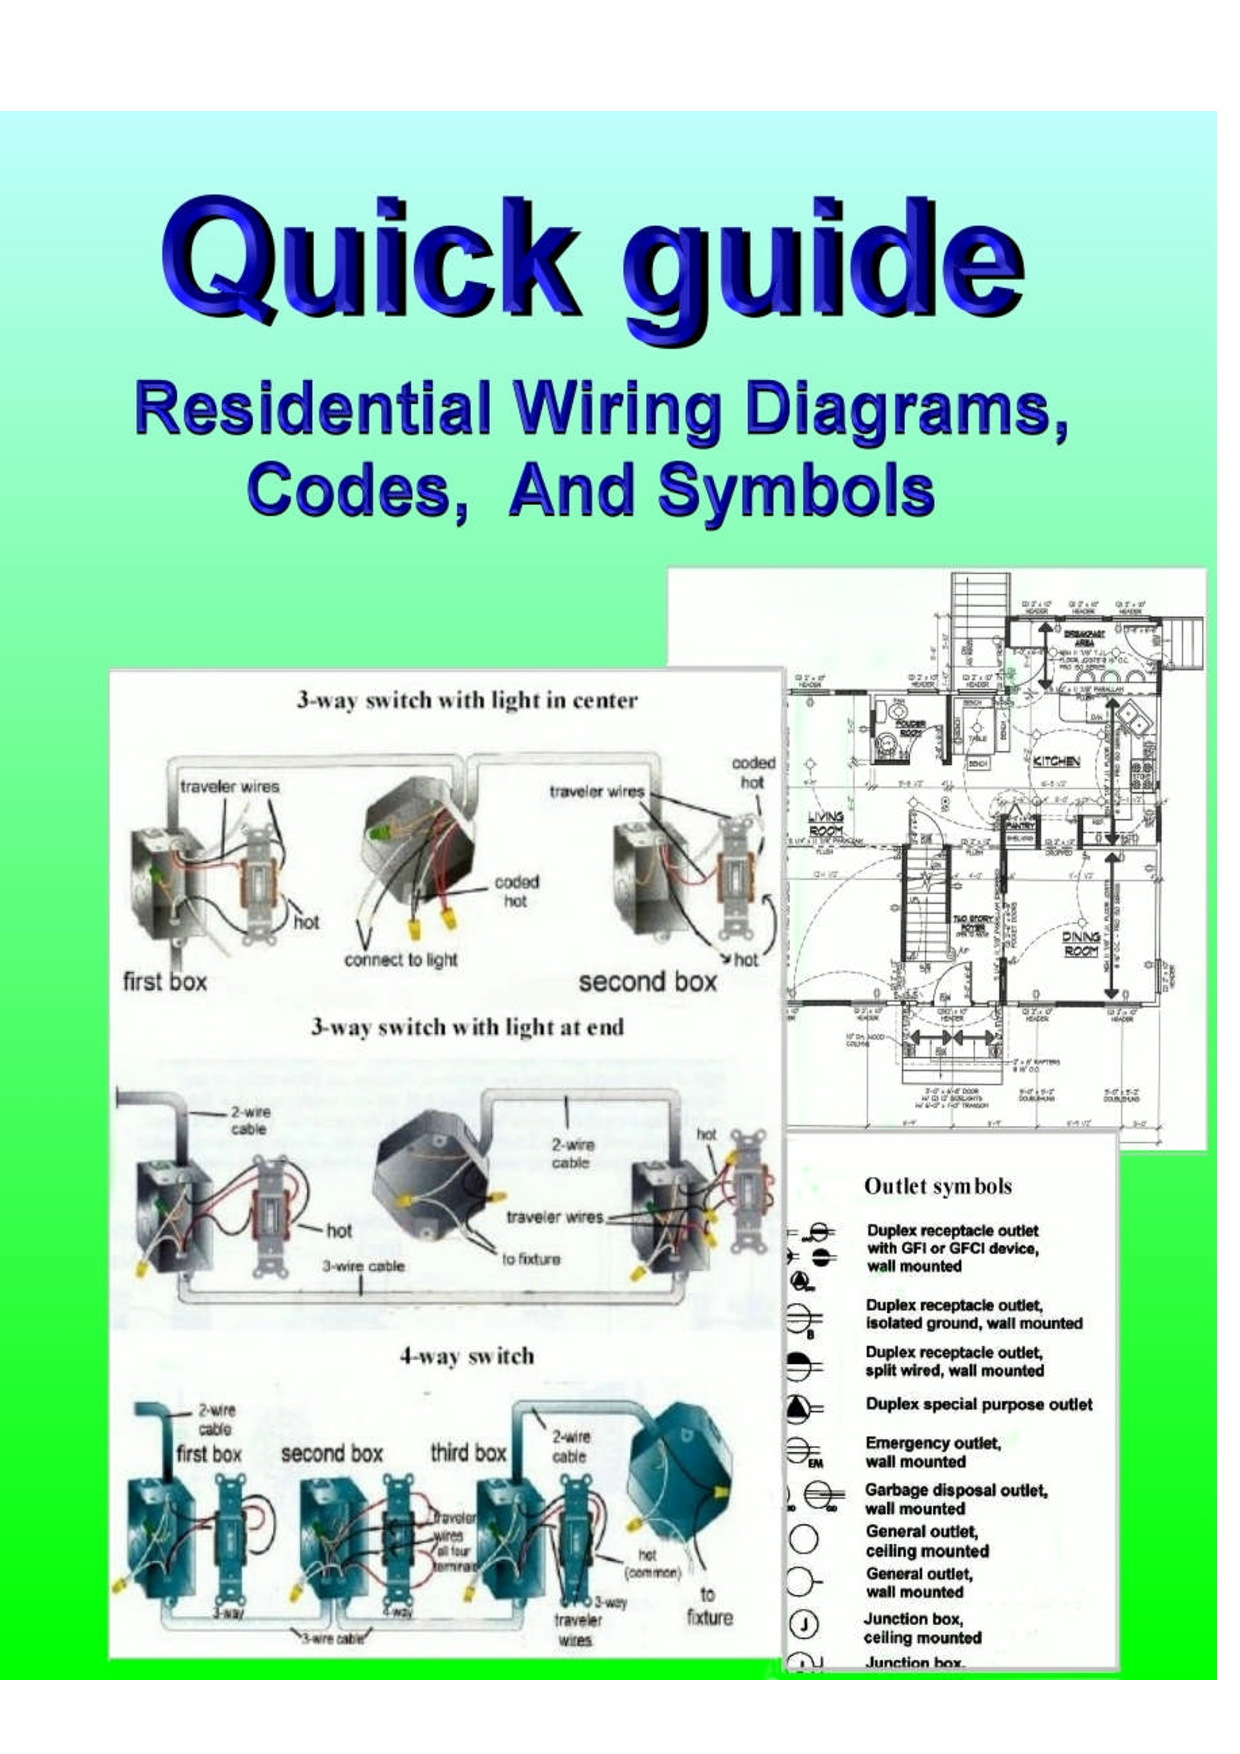 Garden Tub Plumbing Diagram Free Download Wiring Schematic C3 Headlight Picture Rh Bravebros Co